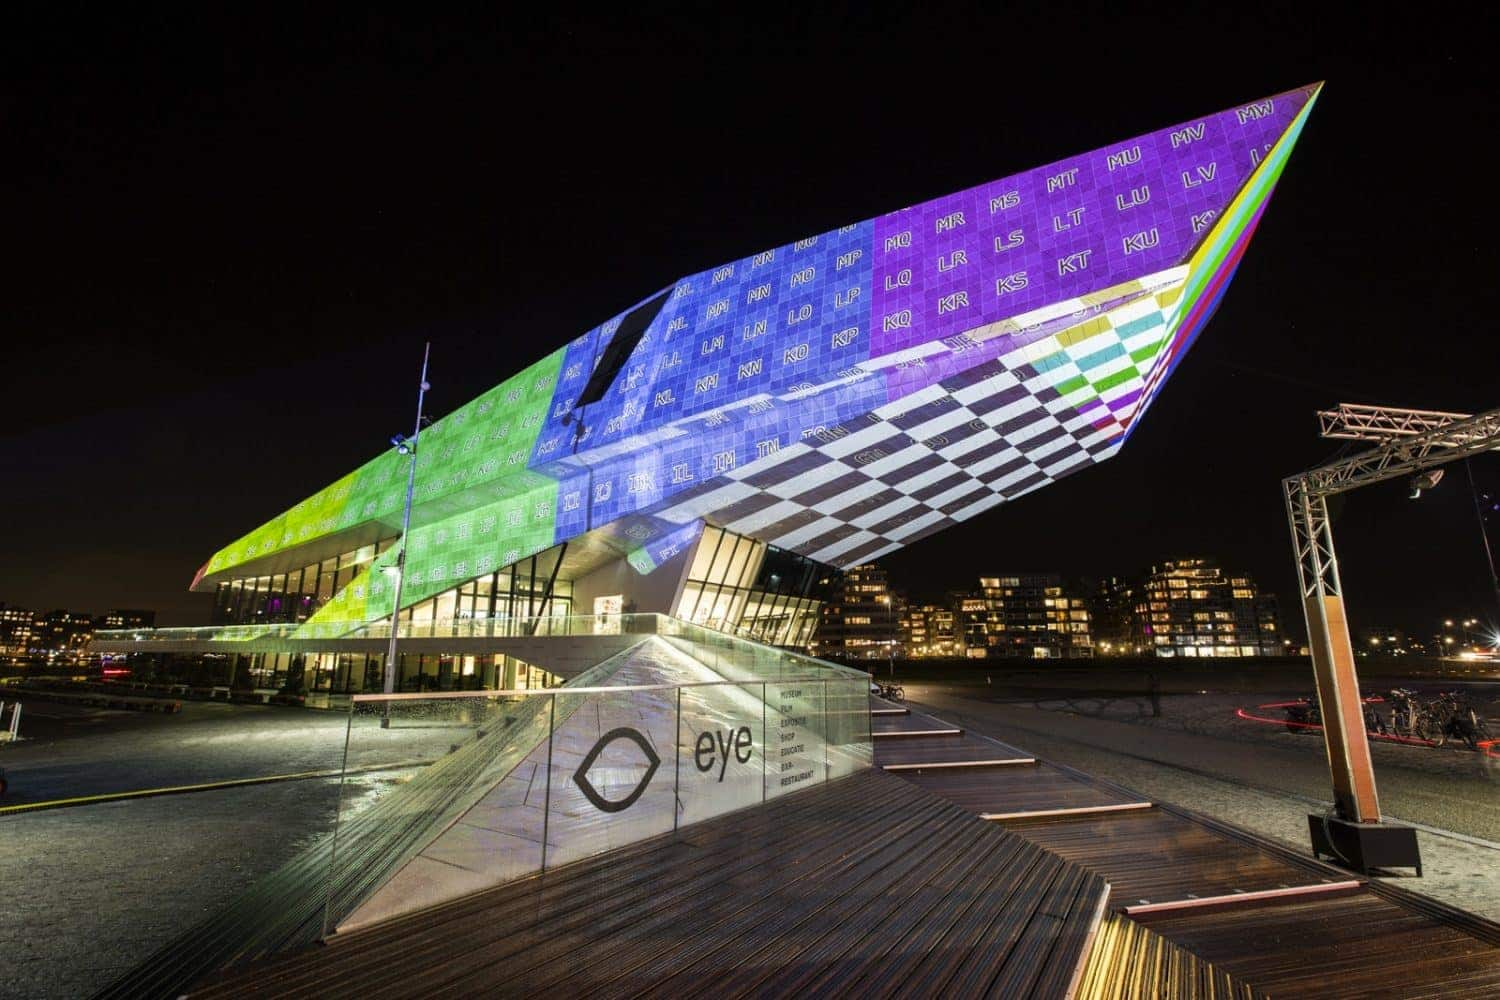 Amsterdam Light Festival - World Masters of Projection Mapping